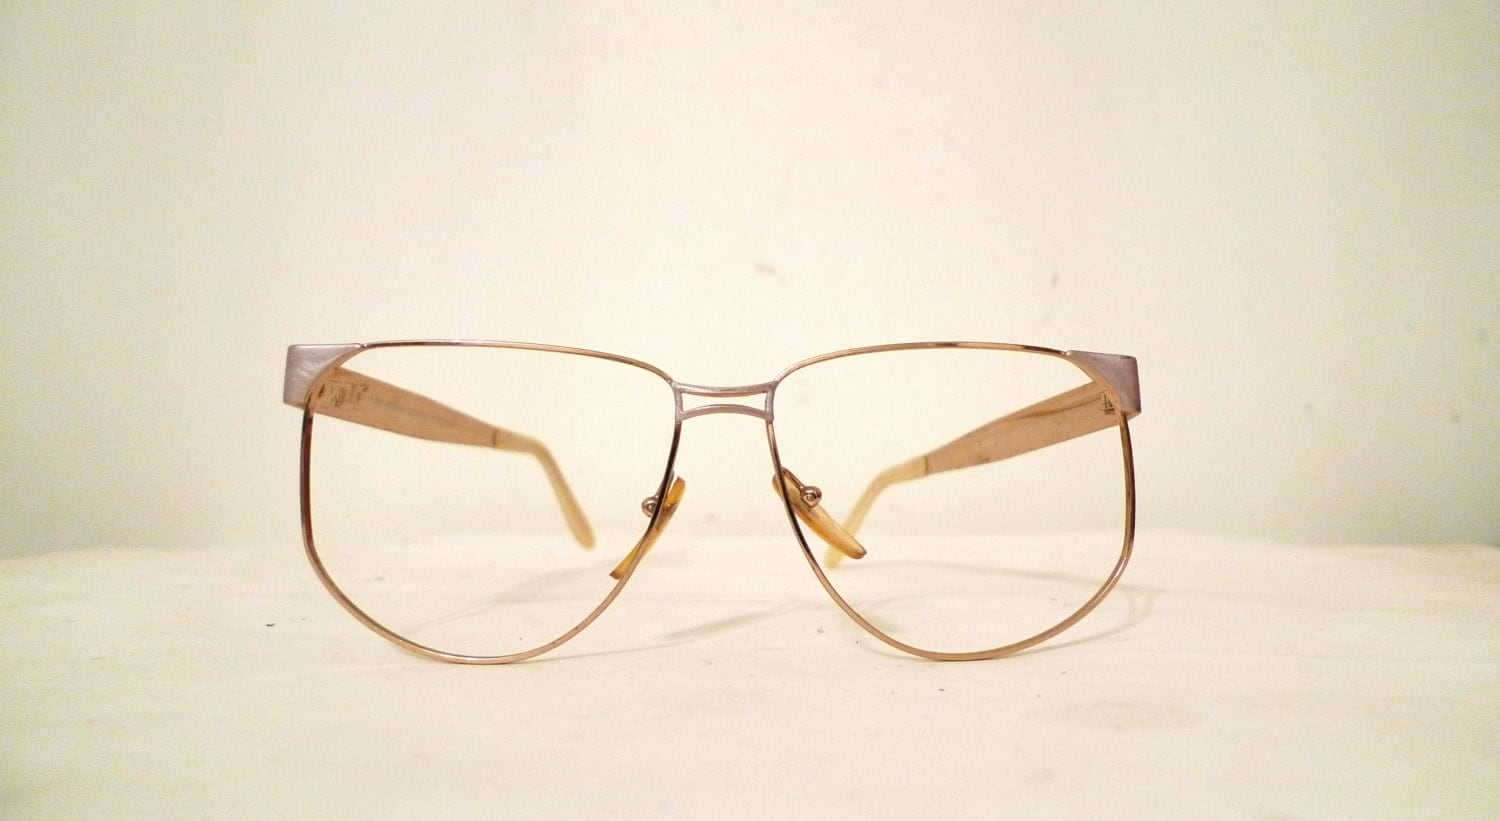 Big Pierre Cardin Aviator Frame Italy Eyeglasses Never Used